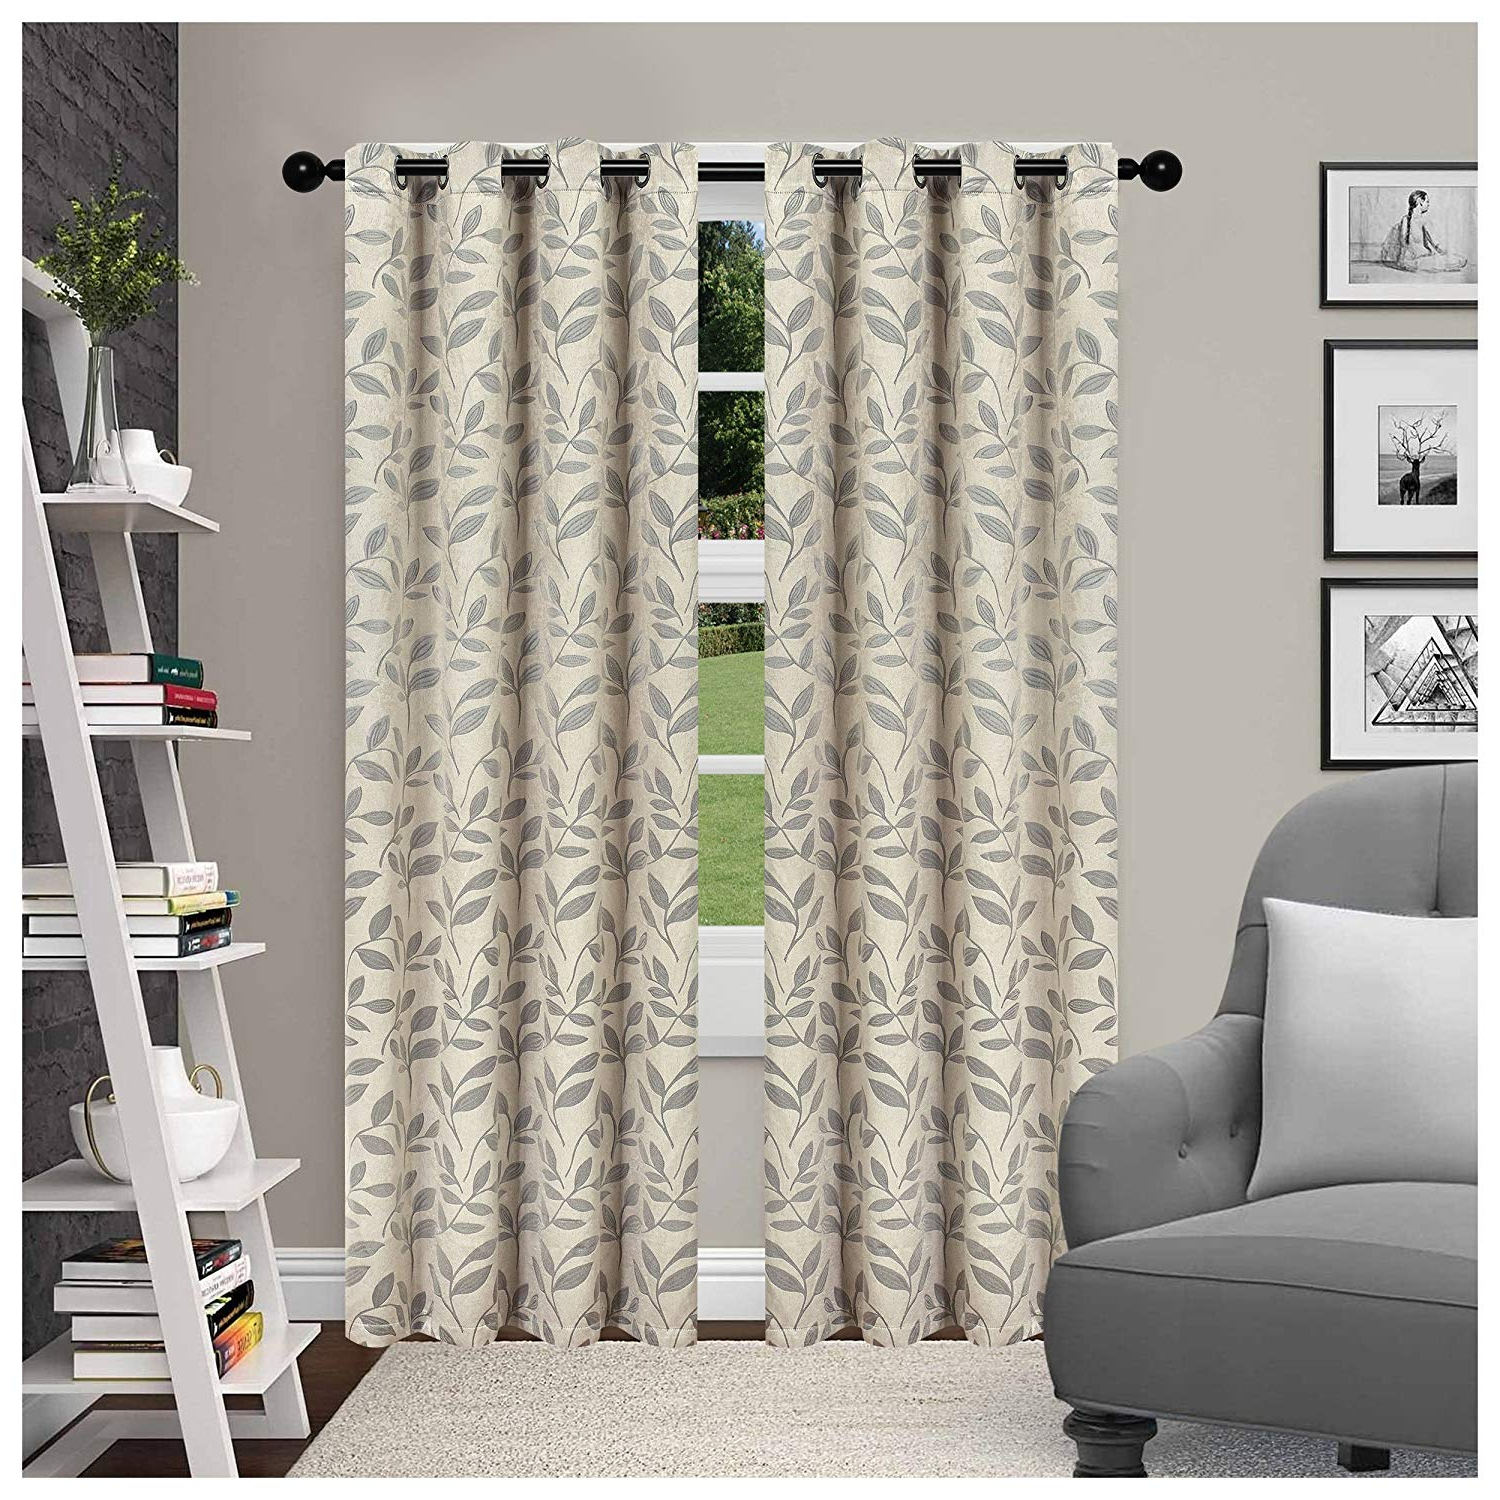 Superior Leaves Insulated Thermal Blackout Grommet Curtain Panel Pairs With Widely Used Superior Leaves Blackout Curtain Set Of 2, Thermal Insulated Panel Pair  With Grommet Top Header, Beautiful Leaf Jacquard Room Darkening Drapes, (View 14 of 20)